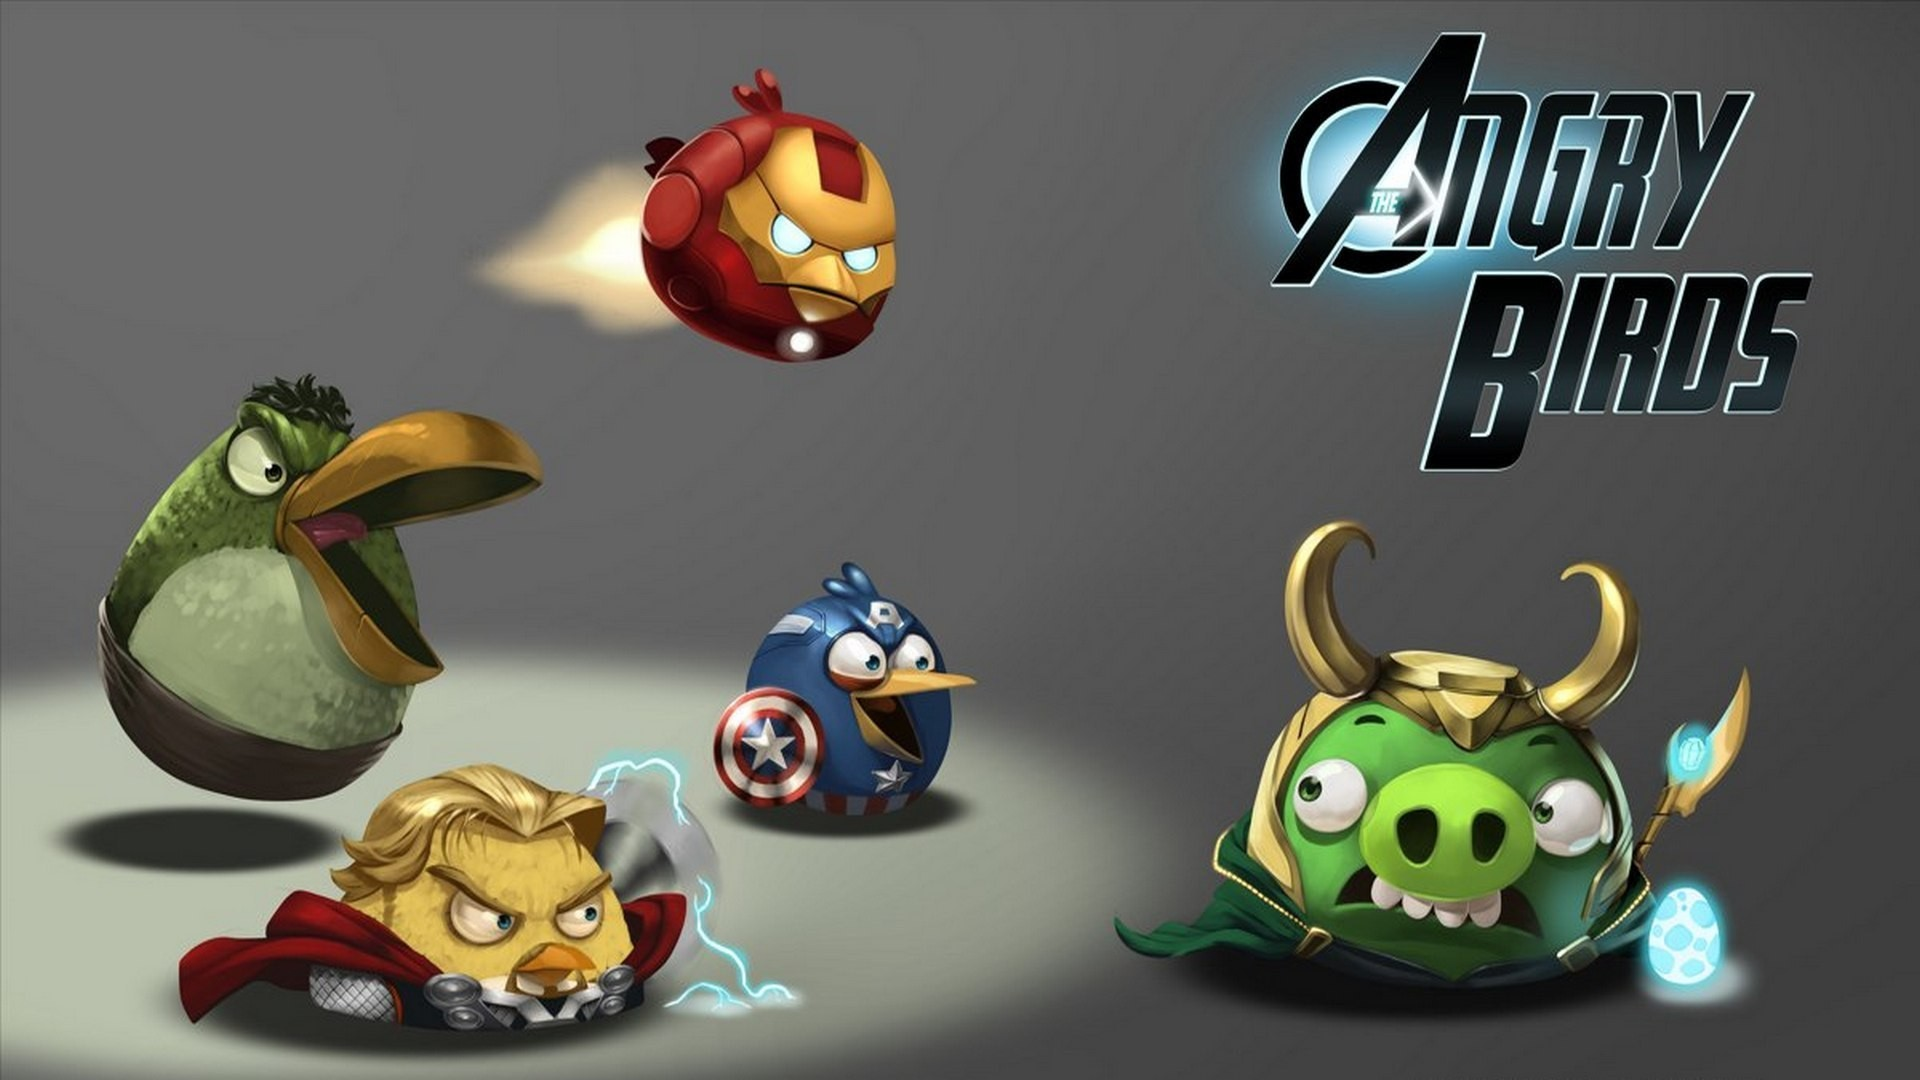 Wallpapers Angry Birds Go! Pocket Gamer Game Hub 1920x1080